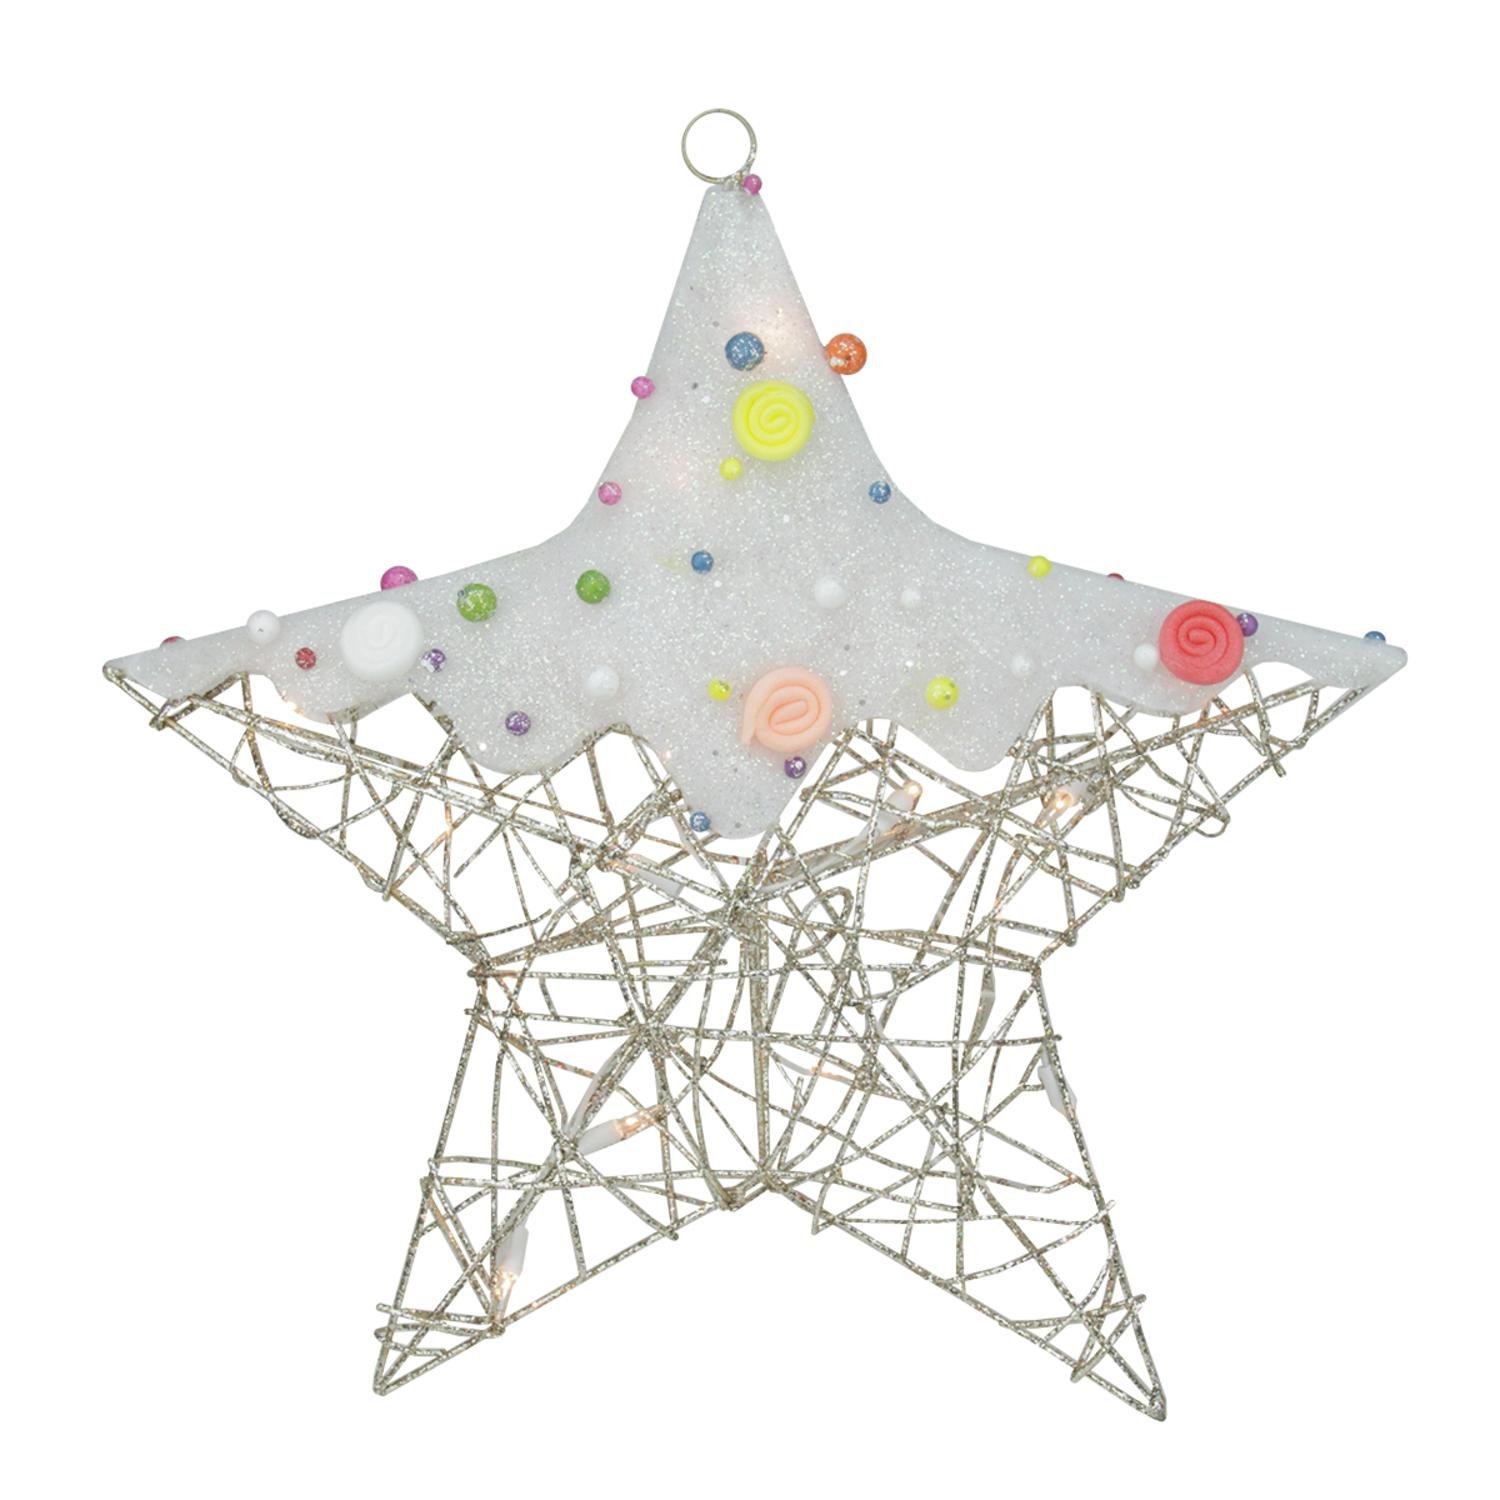 Northlight Lighted Champagne Gold Glittered Rattan Candy Covered Hanging Star Christmas Window Decoration, 19''